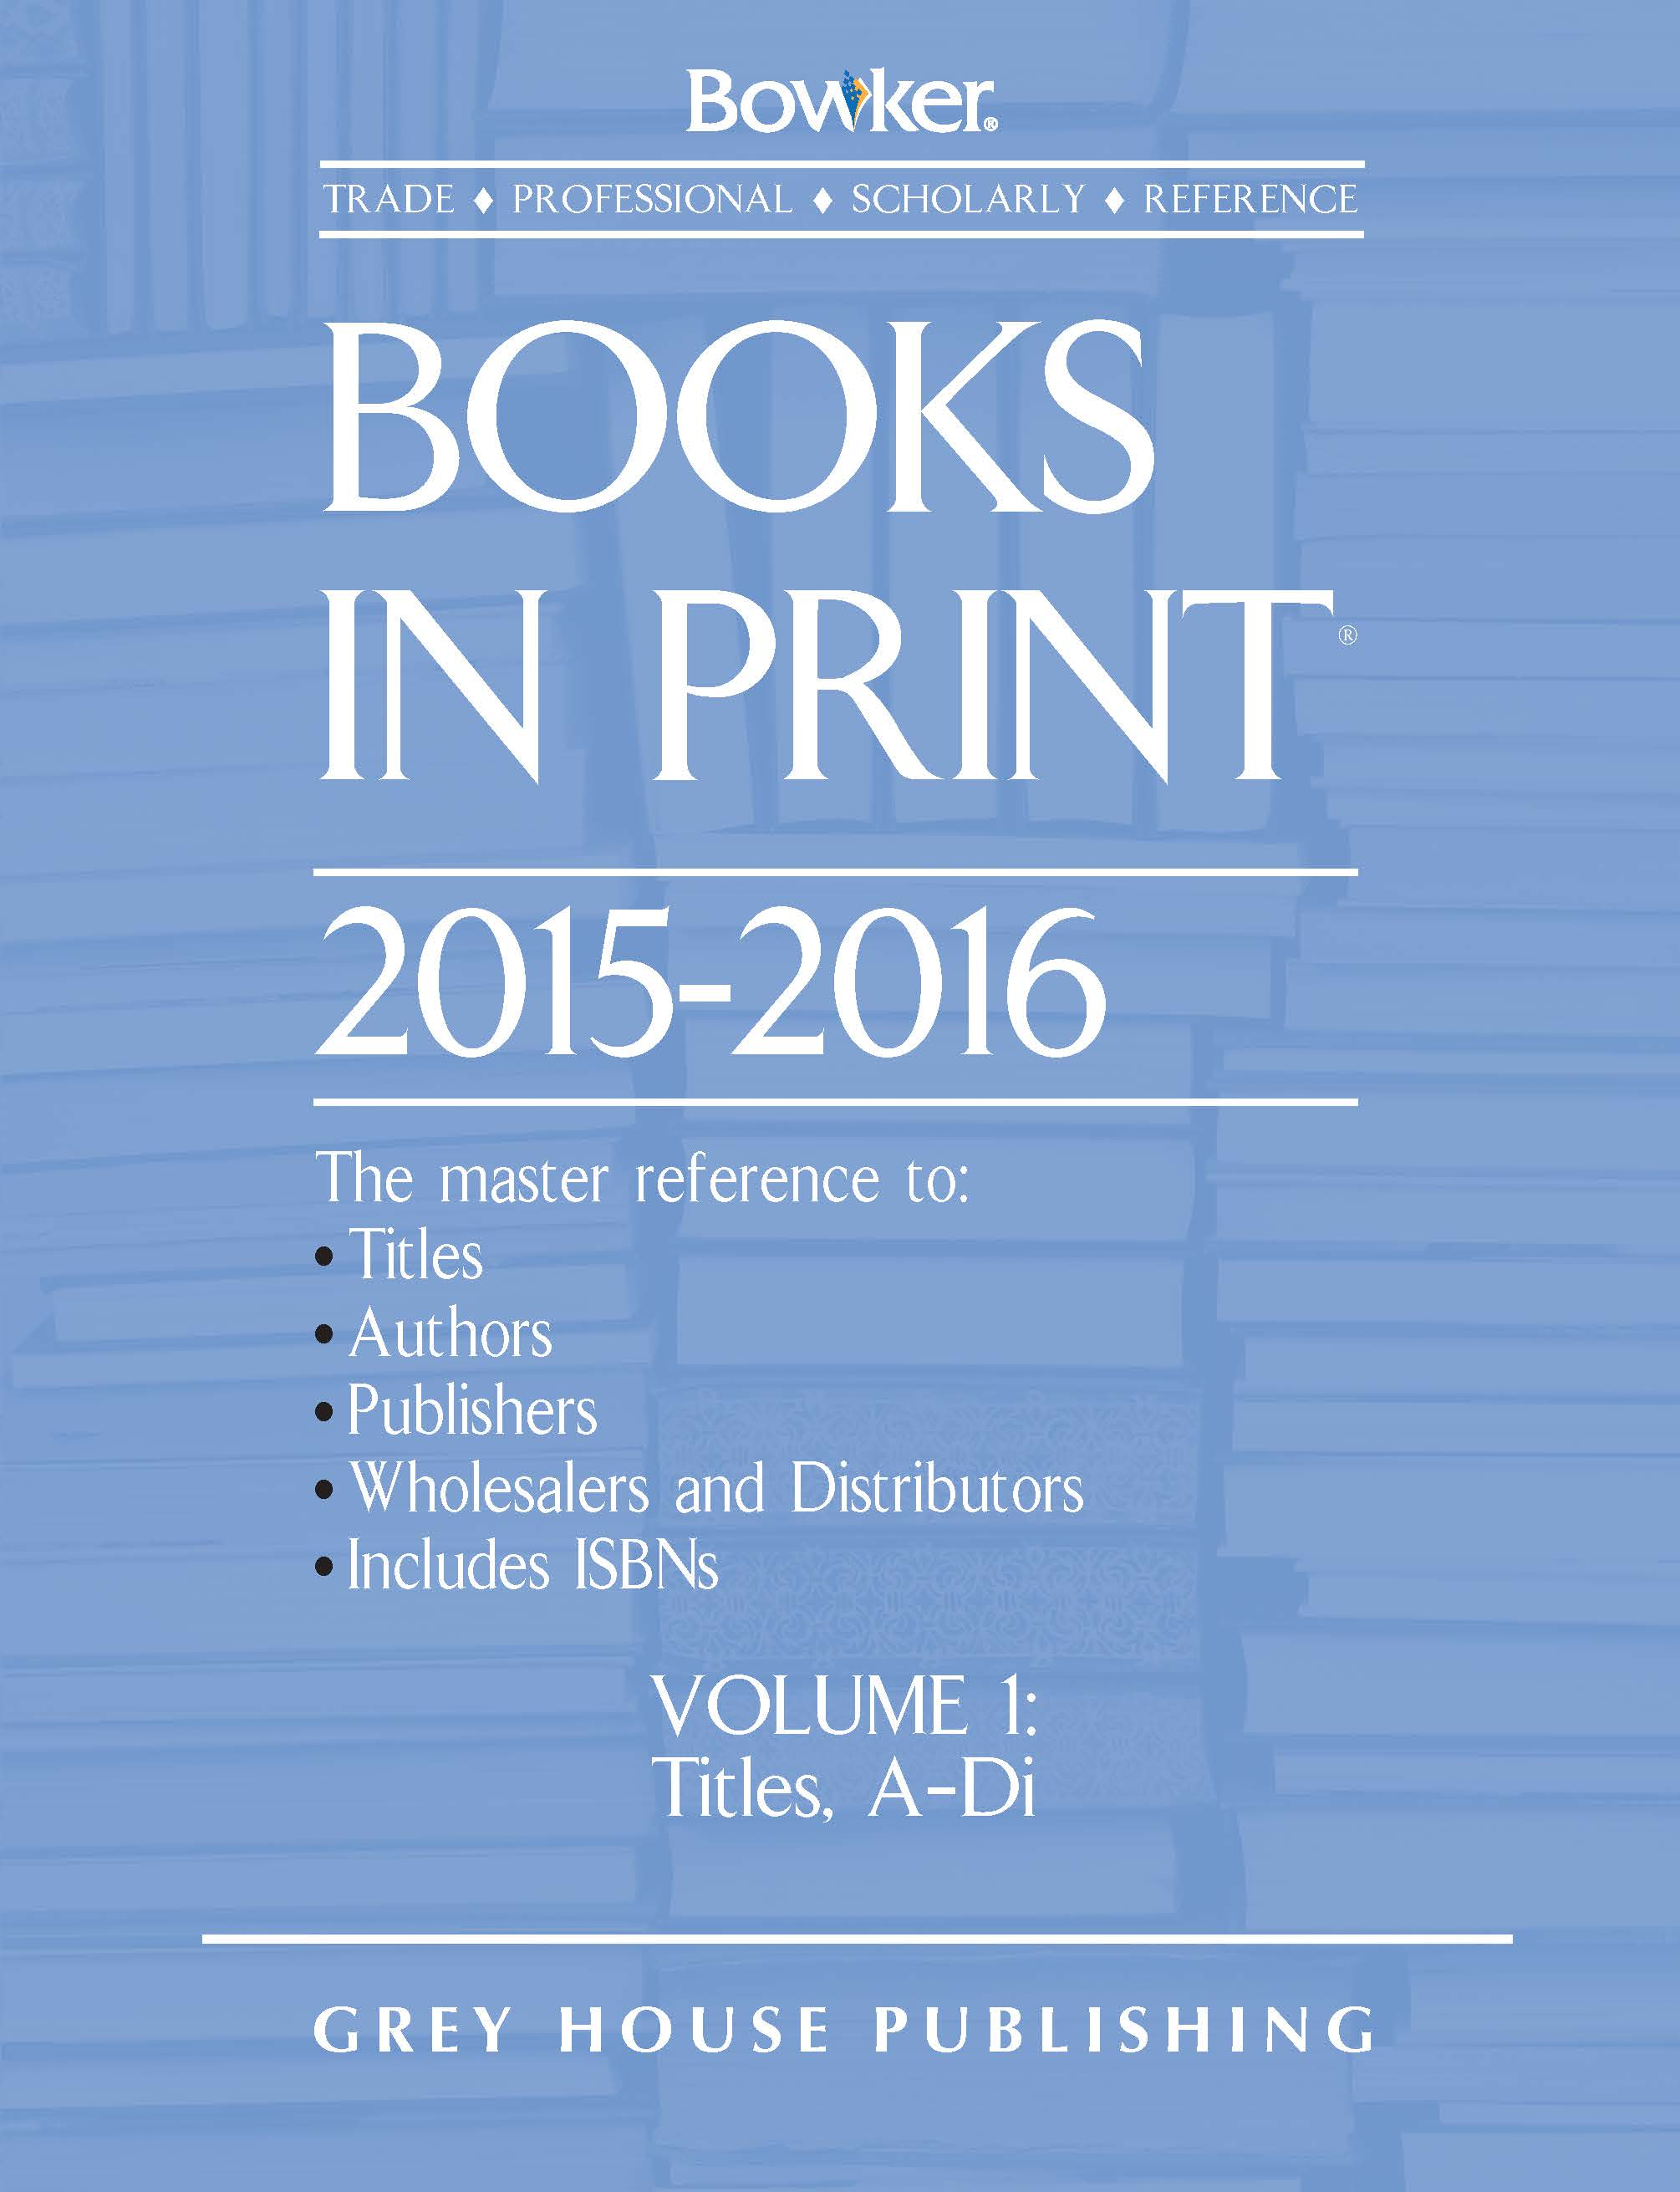 Bowker Books in Print